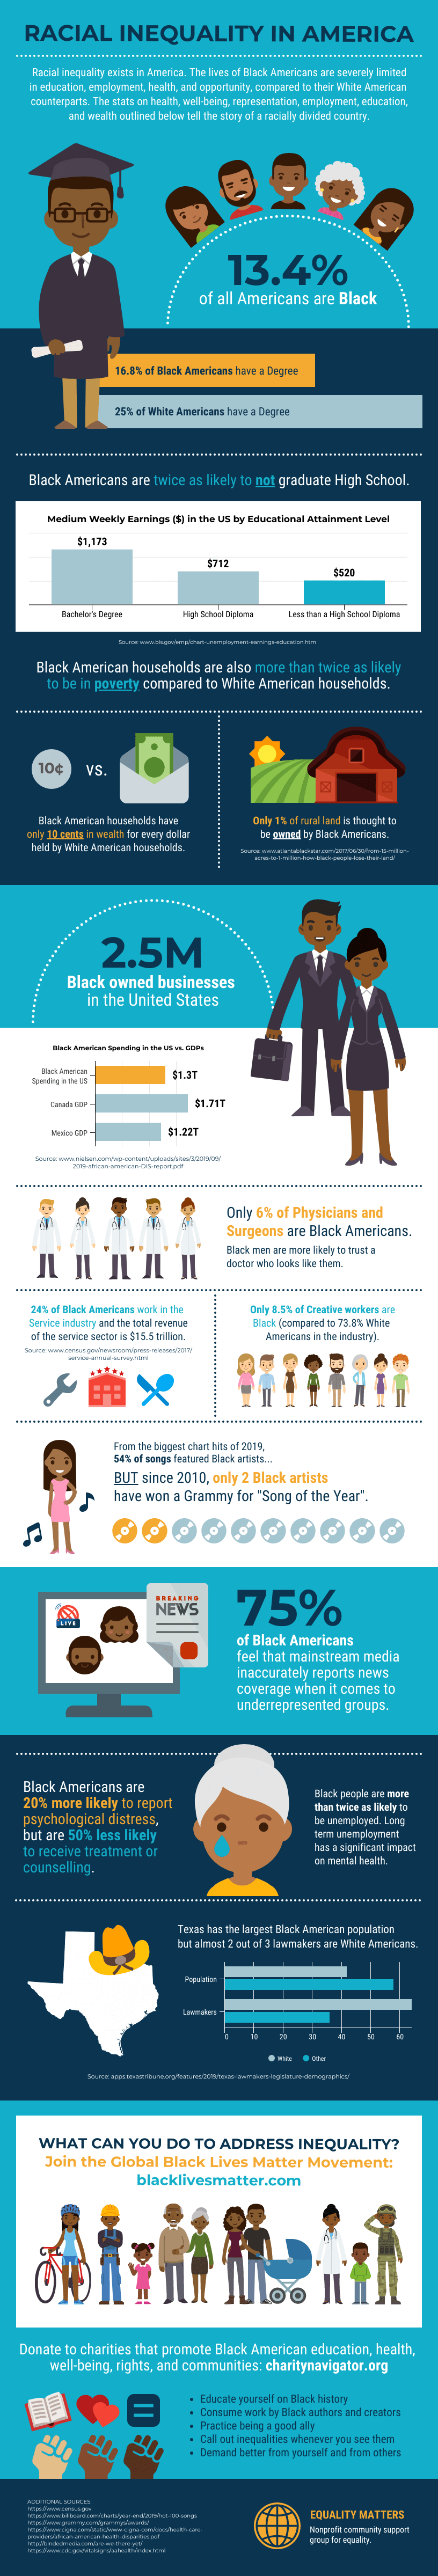 Racial Inequality in the US Statistical Infographic Template